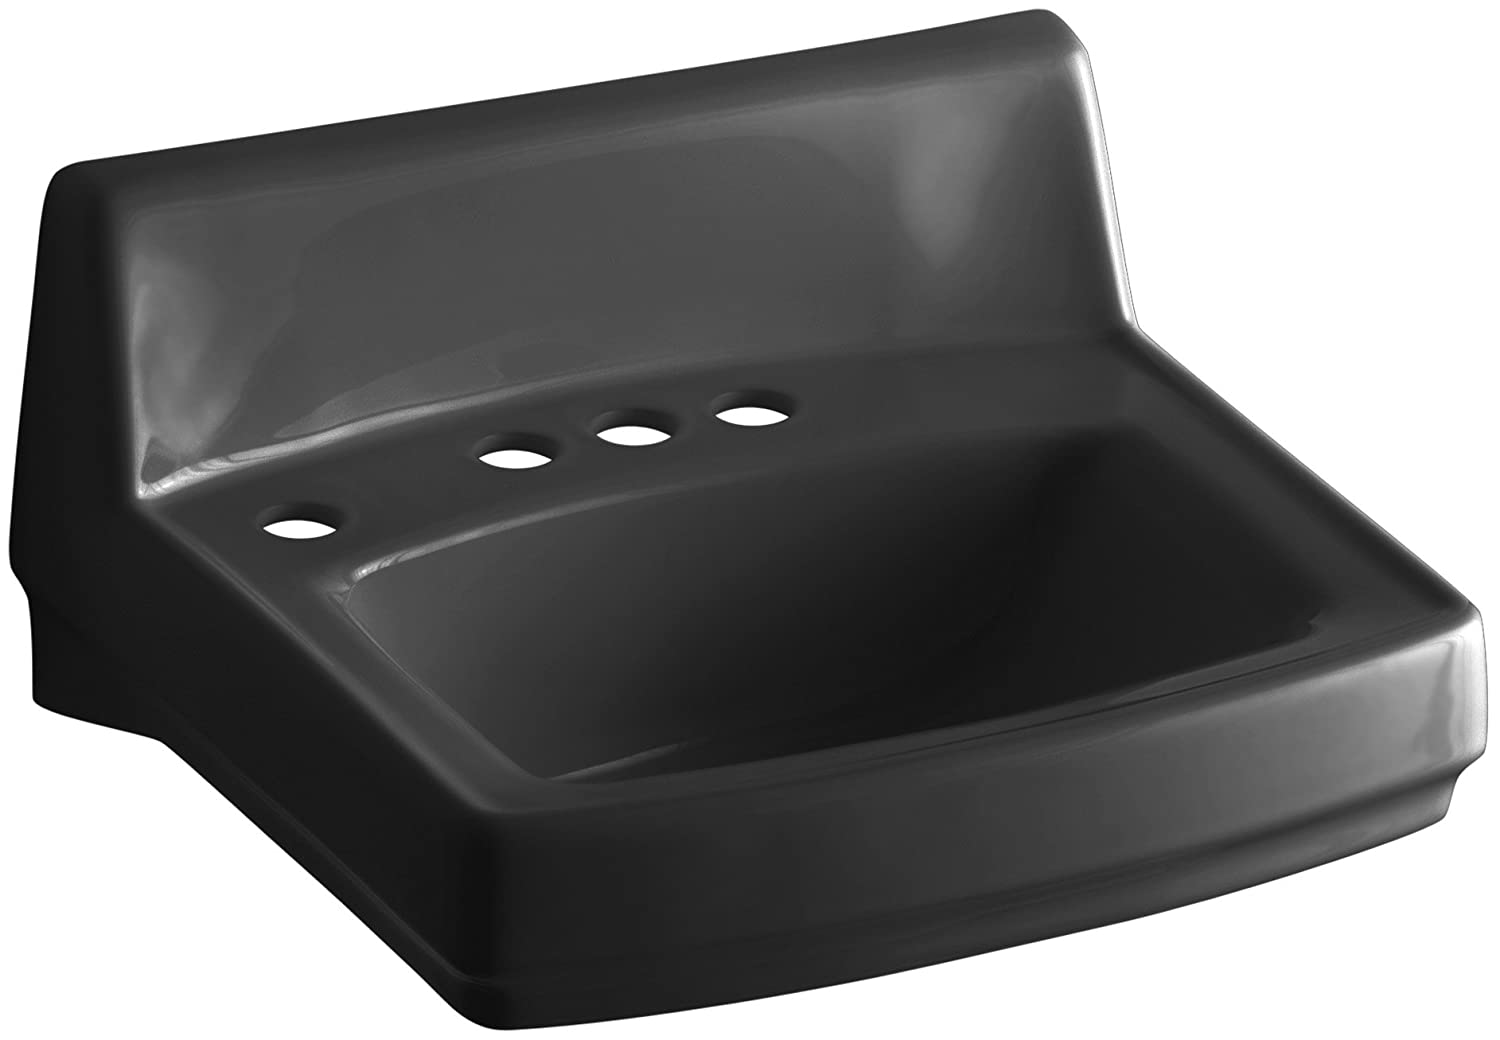 Kohler K-2032-L-7 Greenwich Wall-Mount Lavatory With 4  Centers And Soap Lotion Dispenser Drilling On Left, Black Black